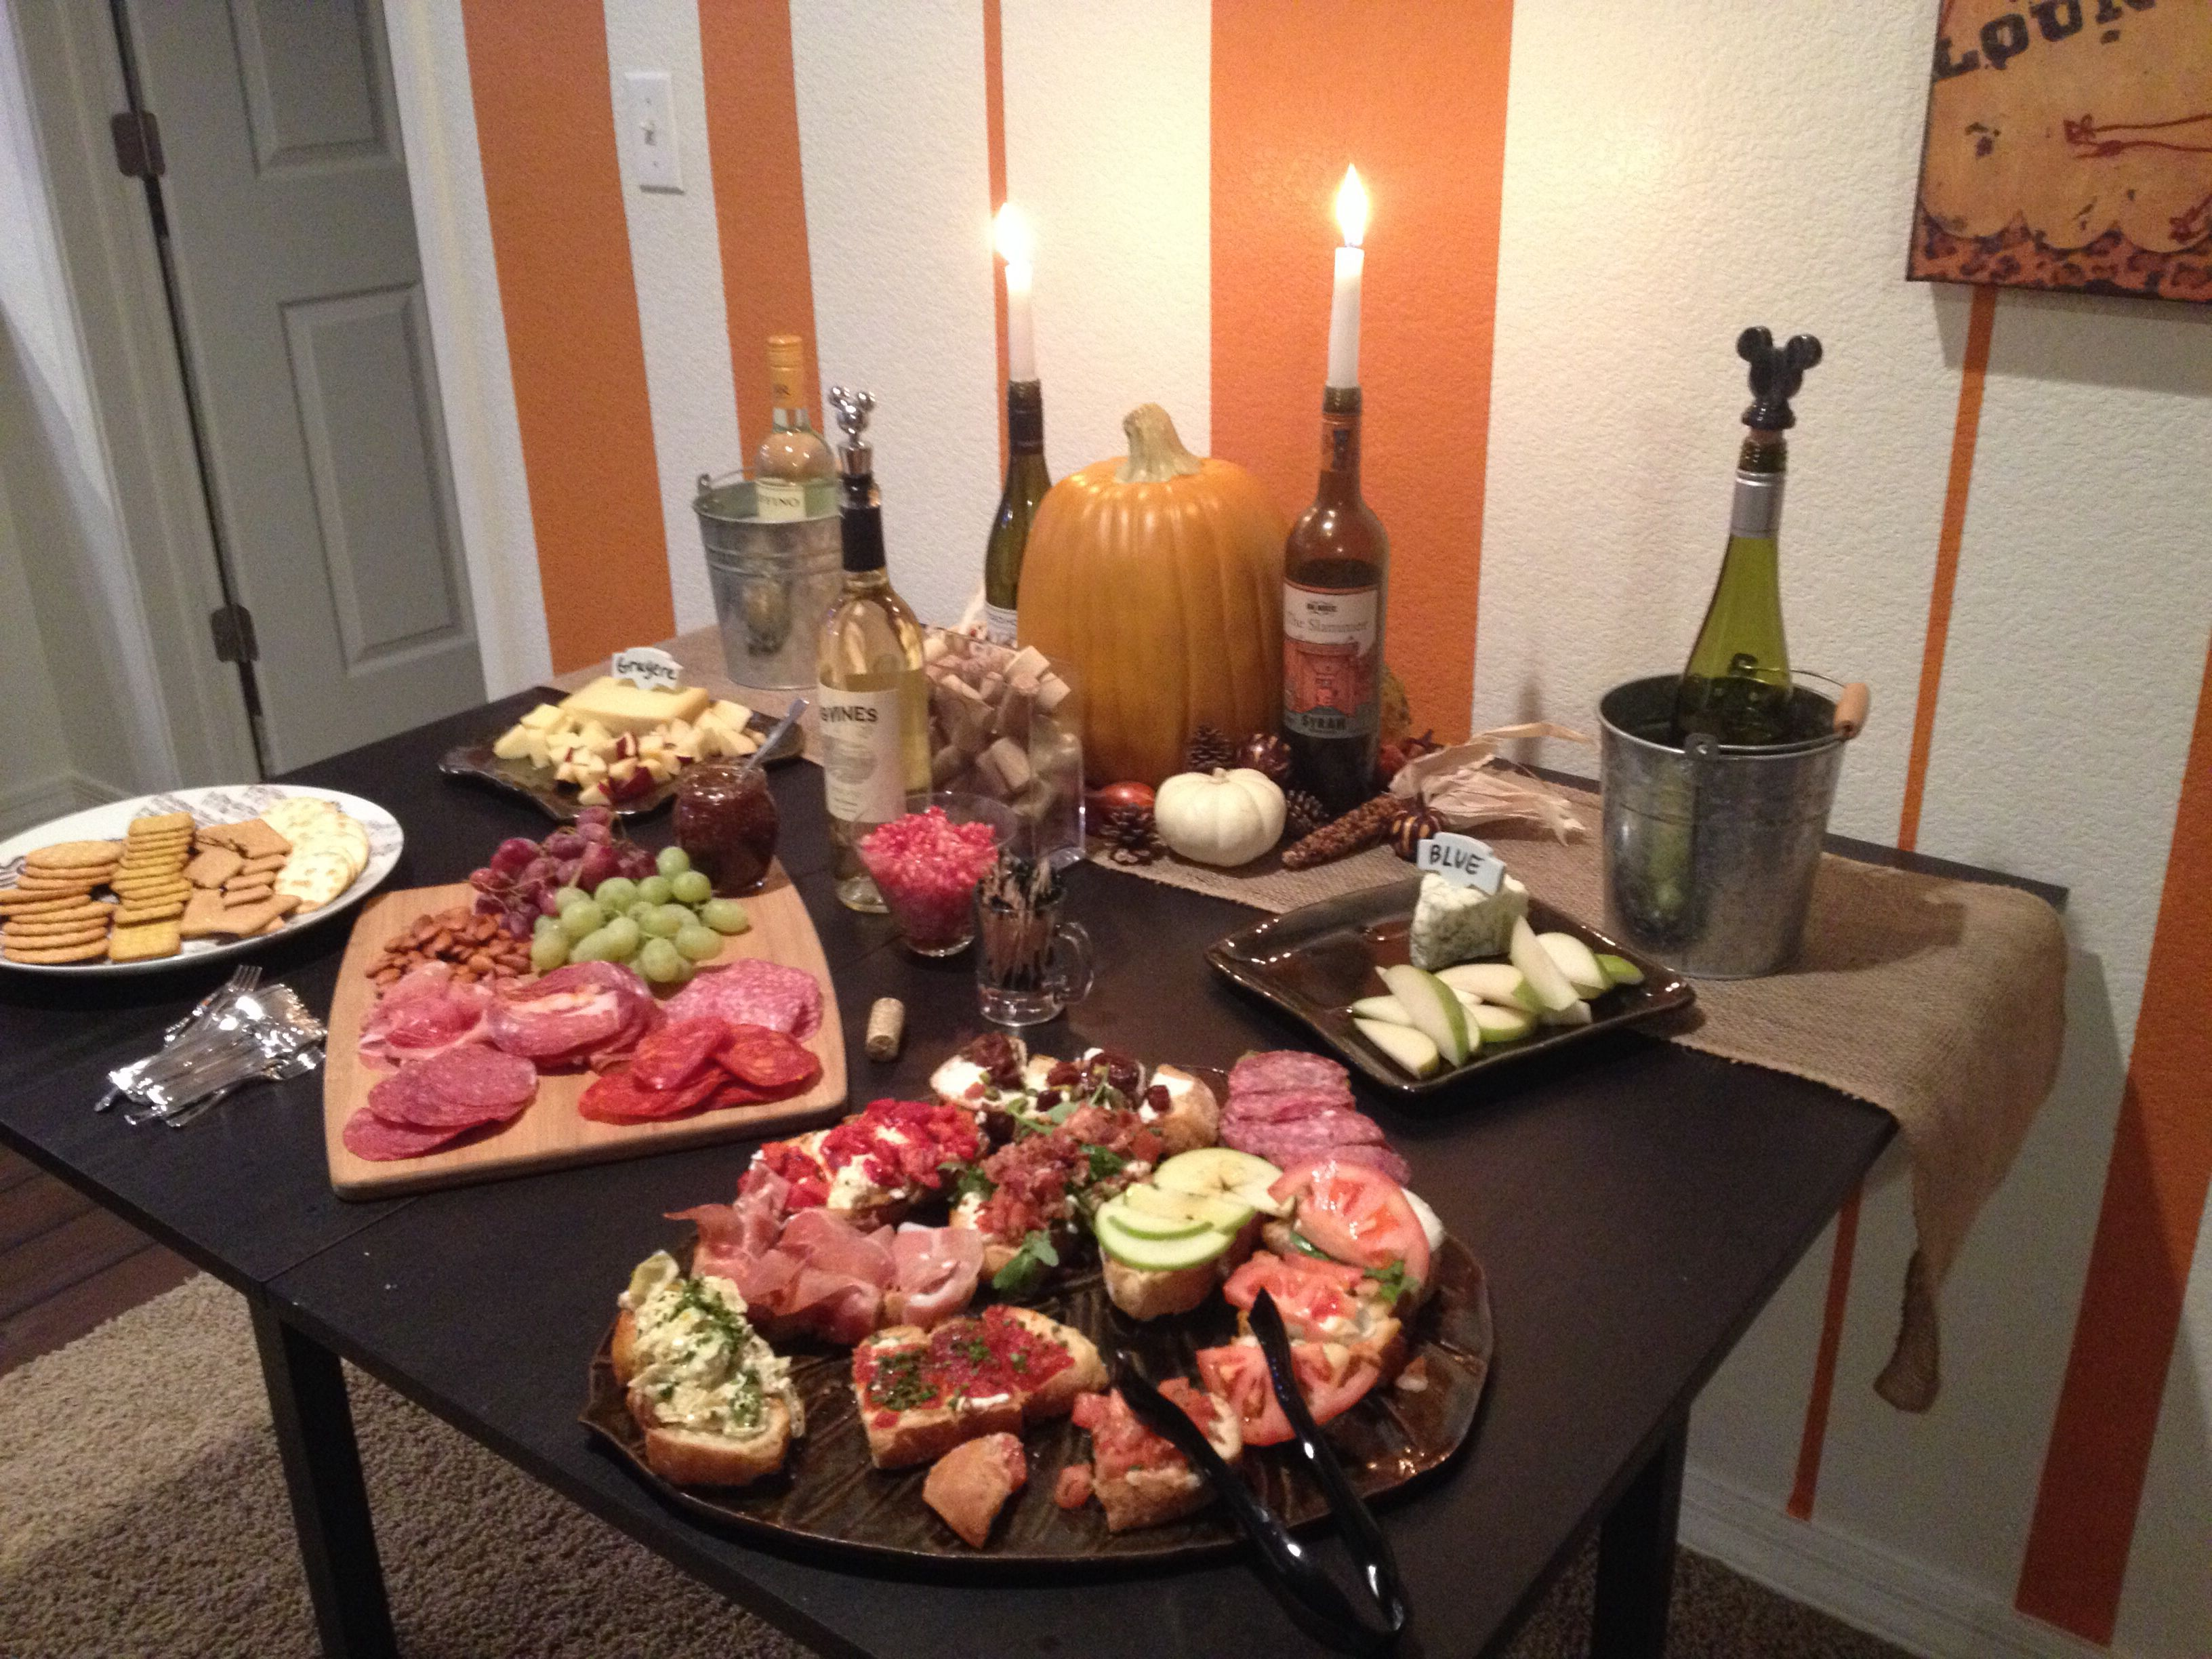 Wine and cheese party layout ideas #wine #cheese | Parties ...